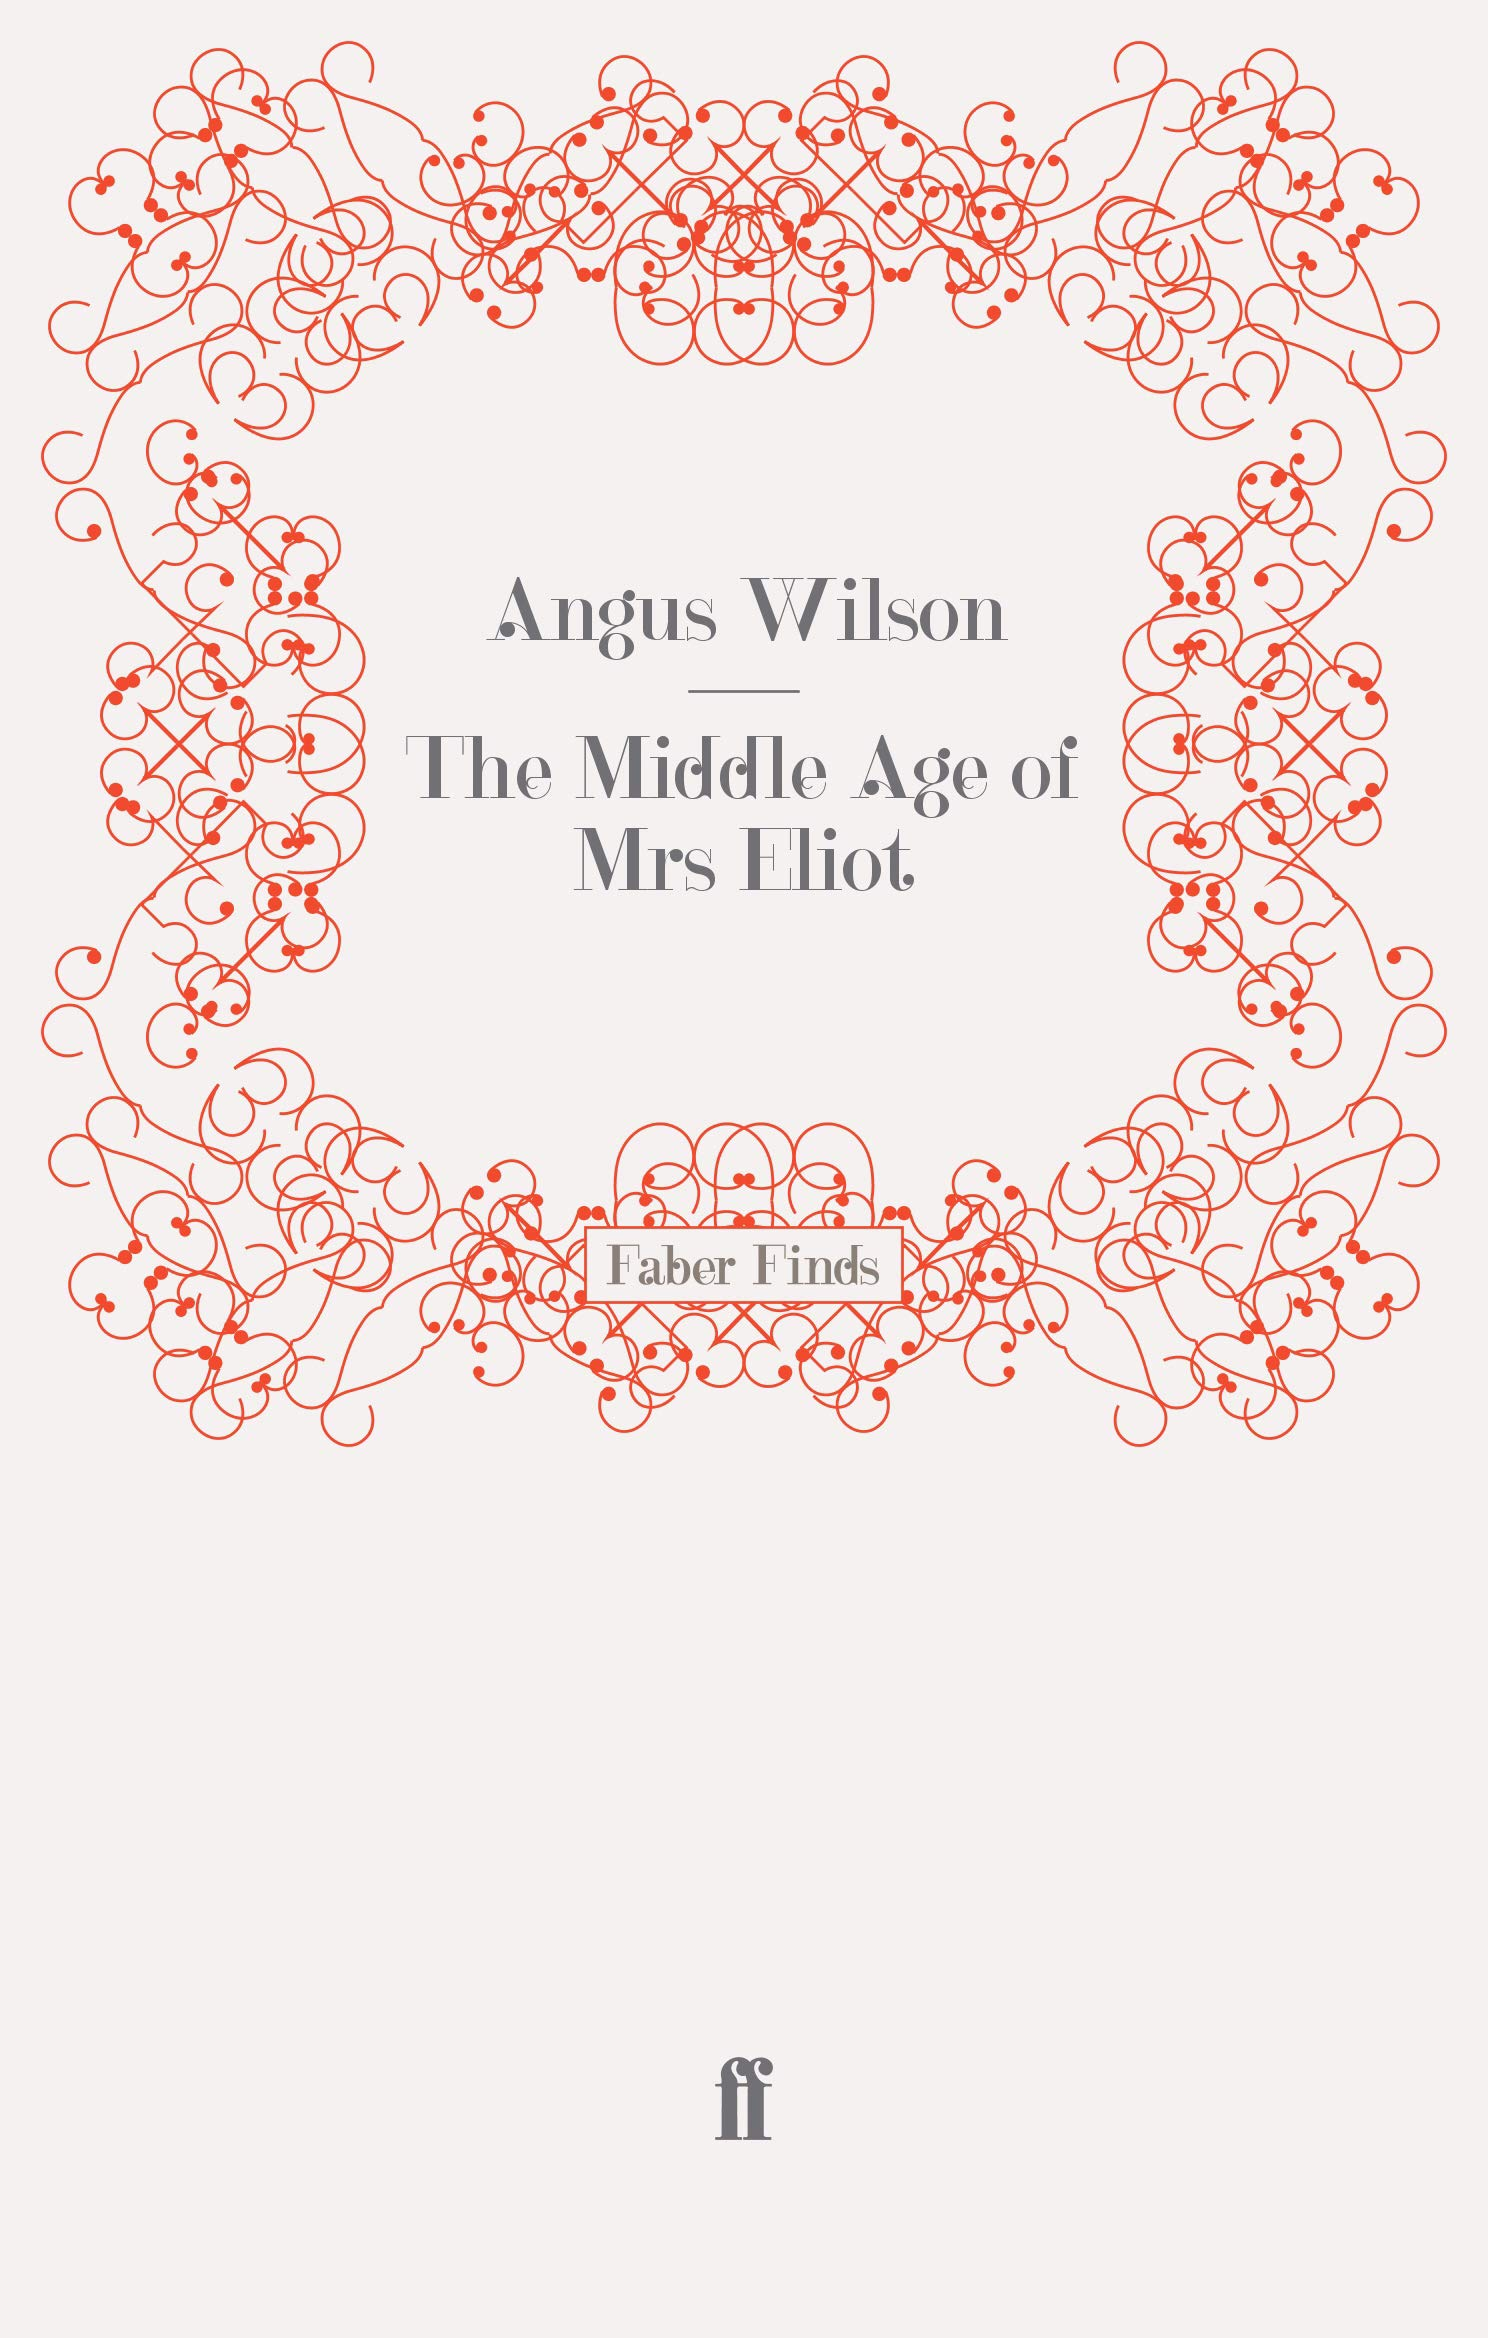 THE MIDDLE AGE OF MRS ELIOT